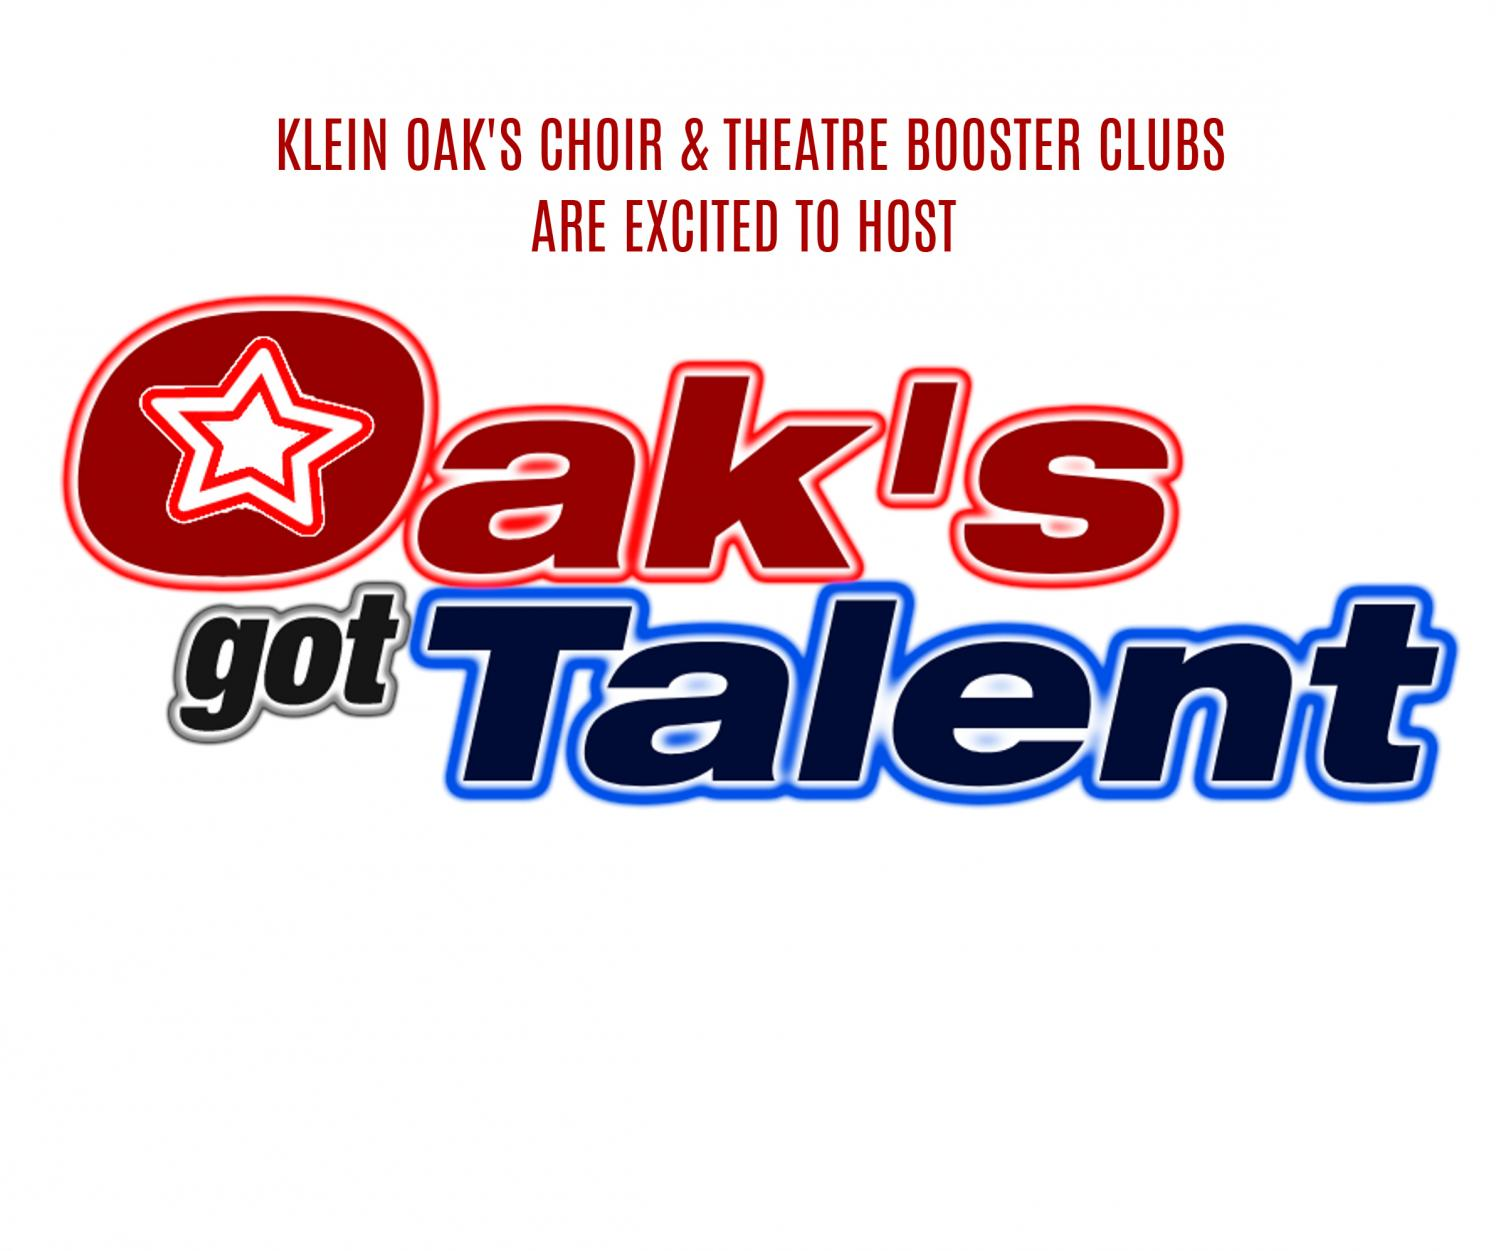 Logo of Oak's Got Talent Show on flyer made by the Choir and Theatre Booster Clubs.